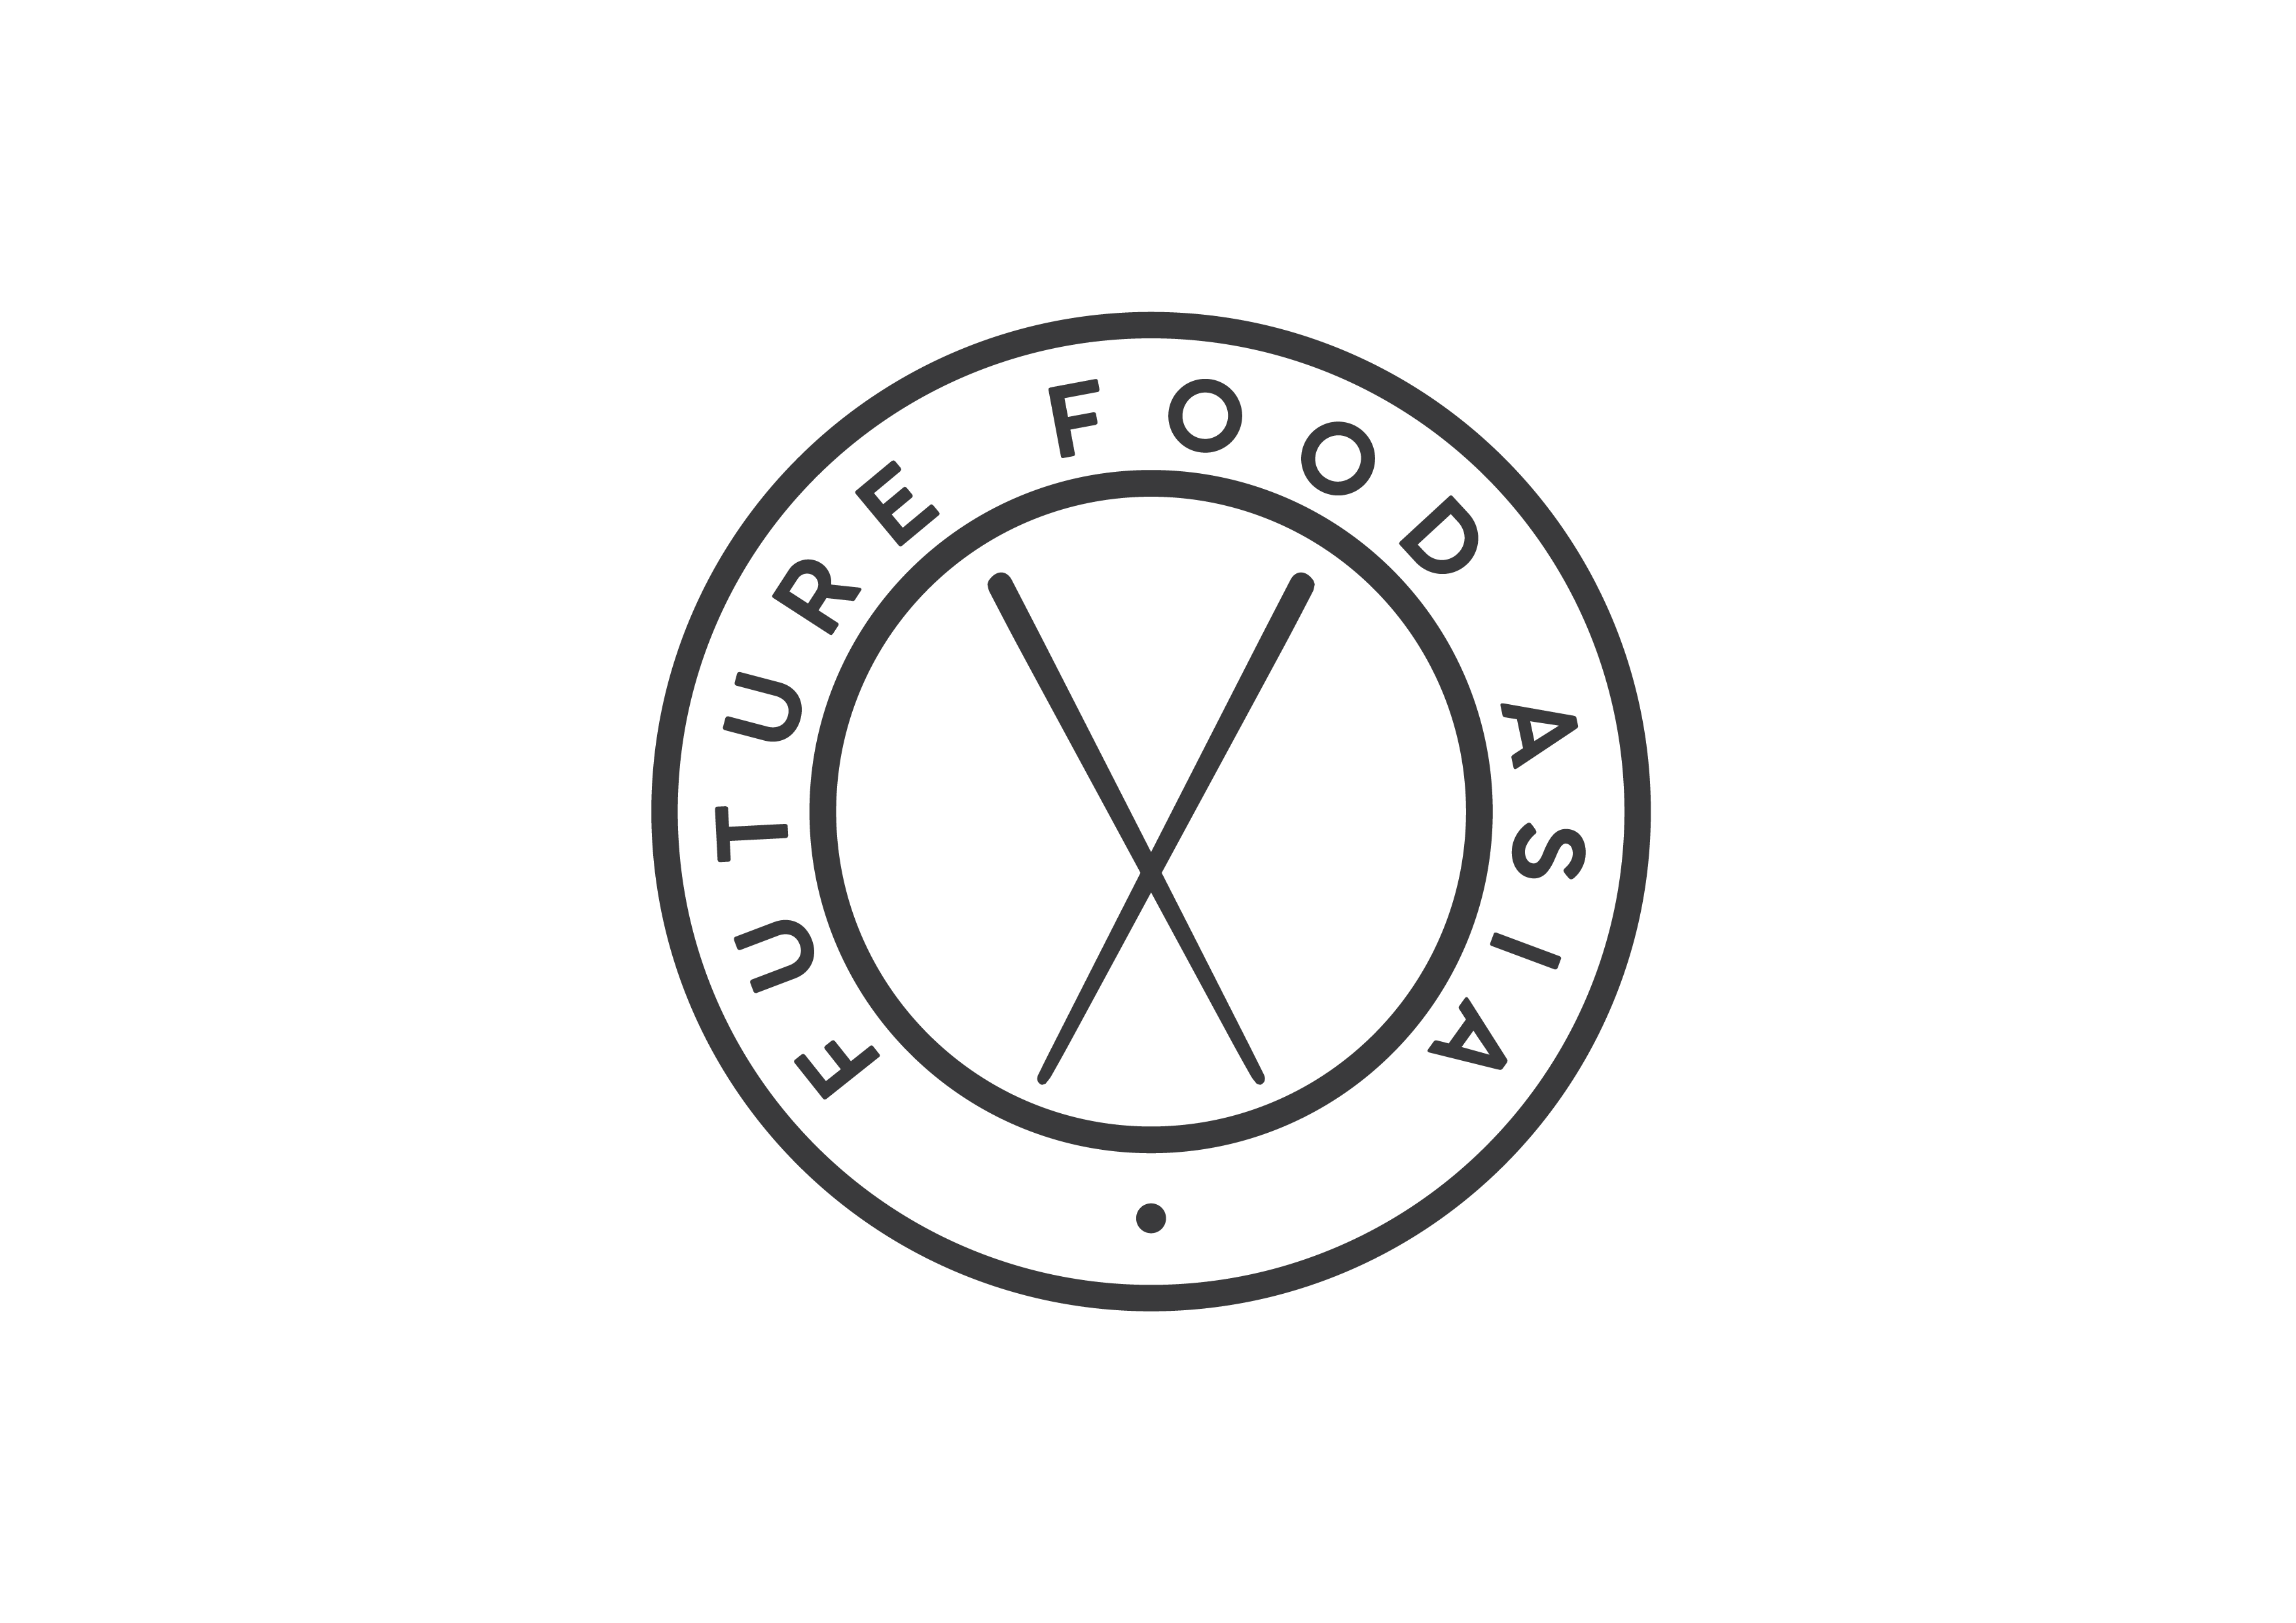 Future Food Asia Logo